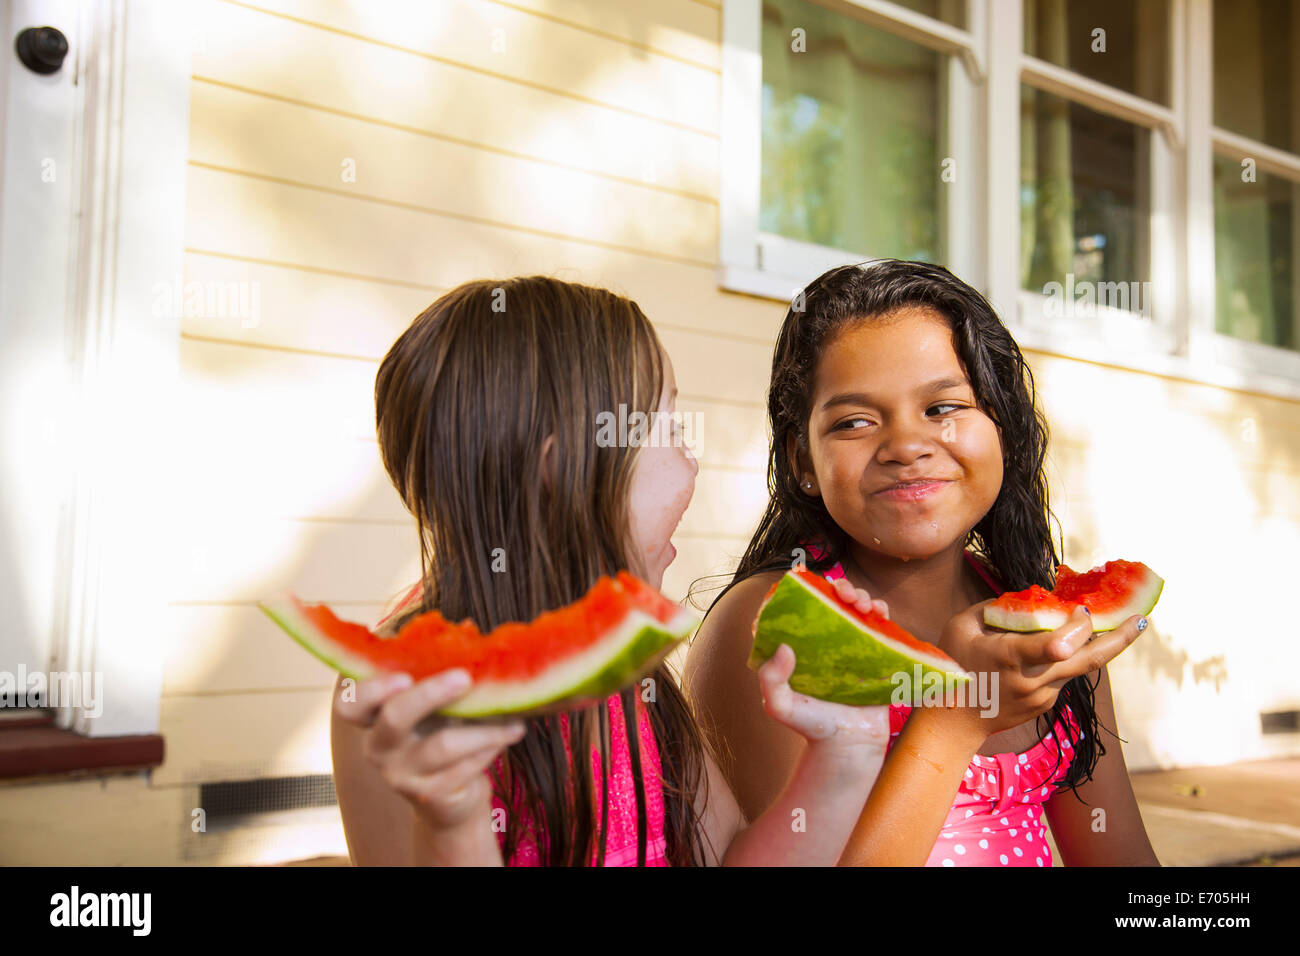 Two smiling girls sitting on house porch with slices of watermelon - Stock Image